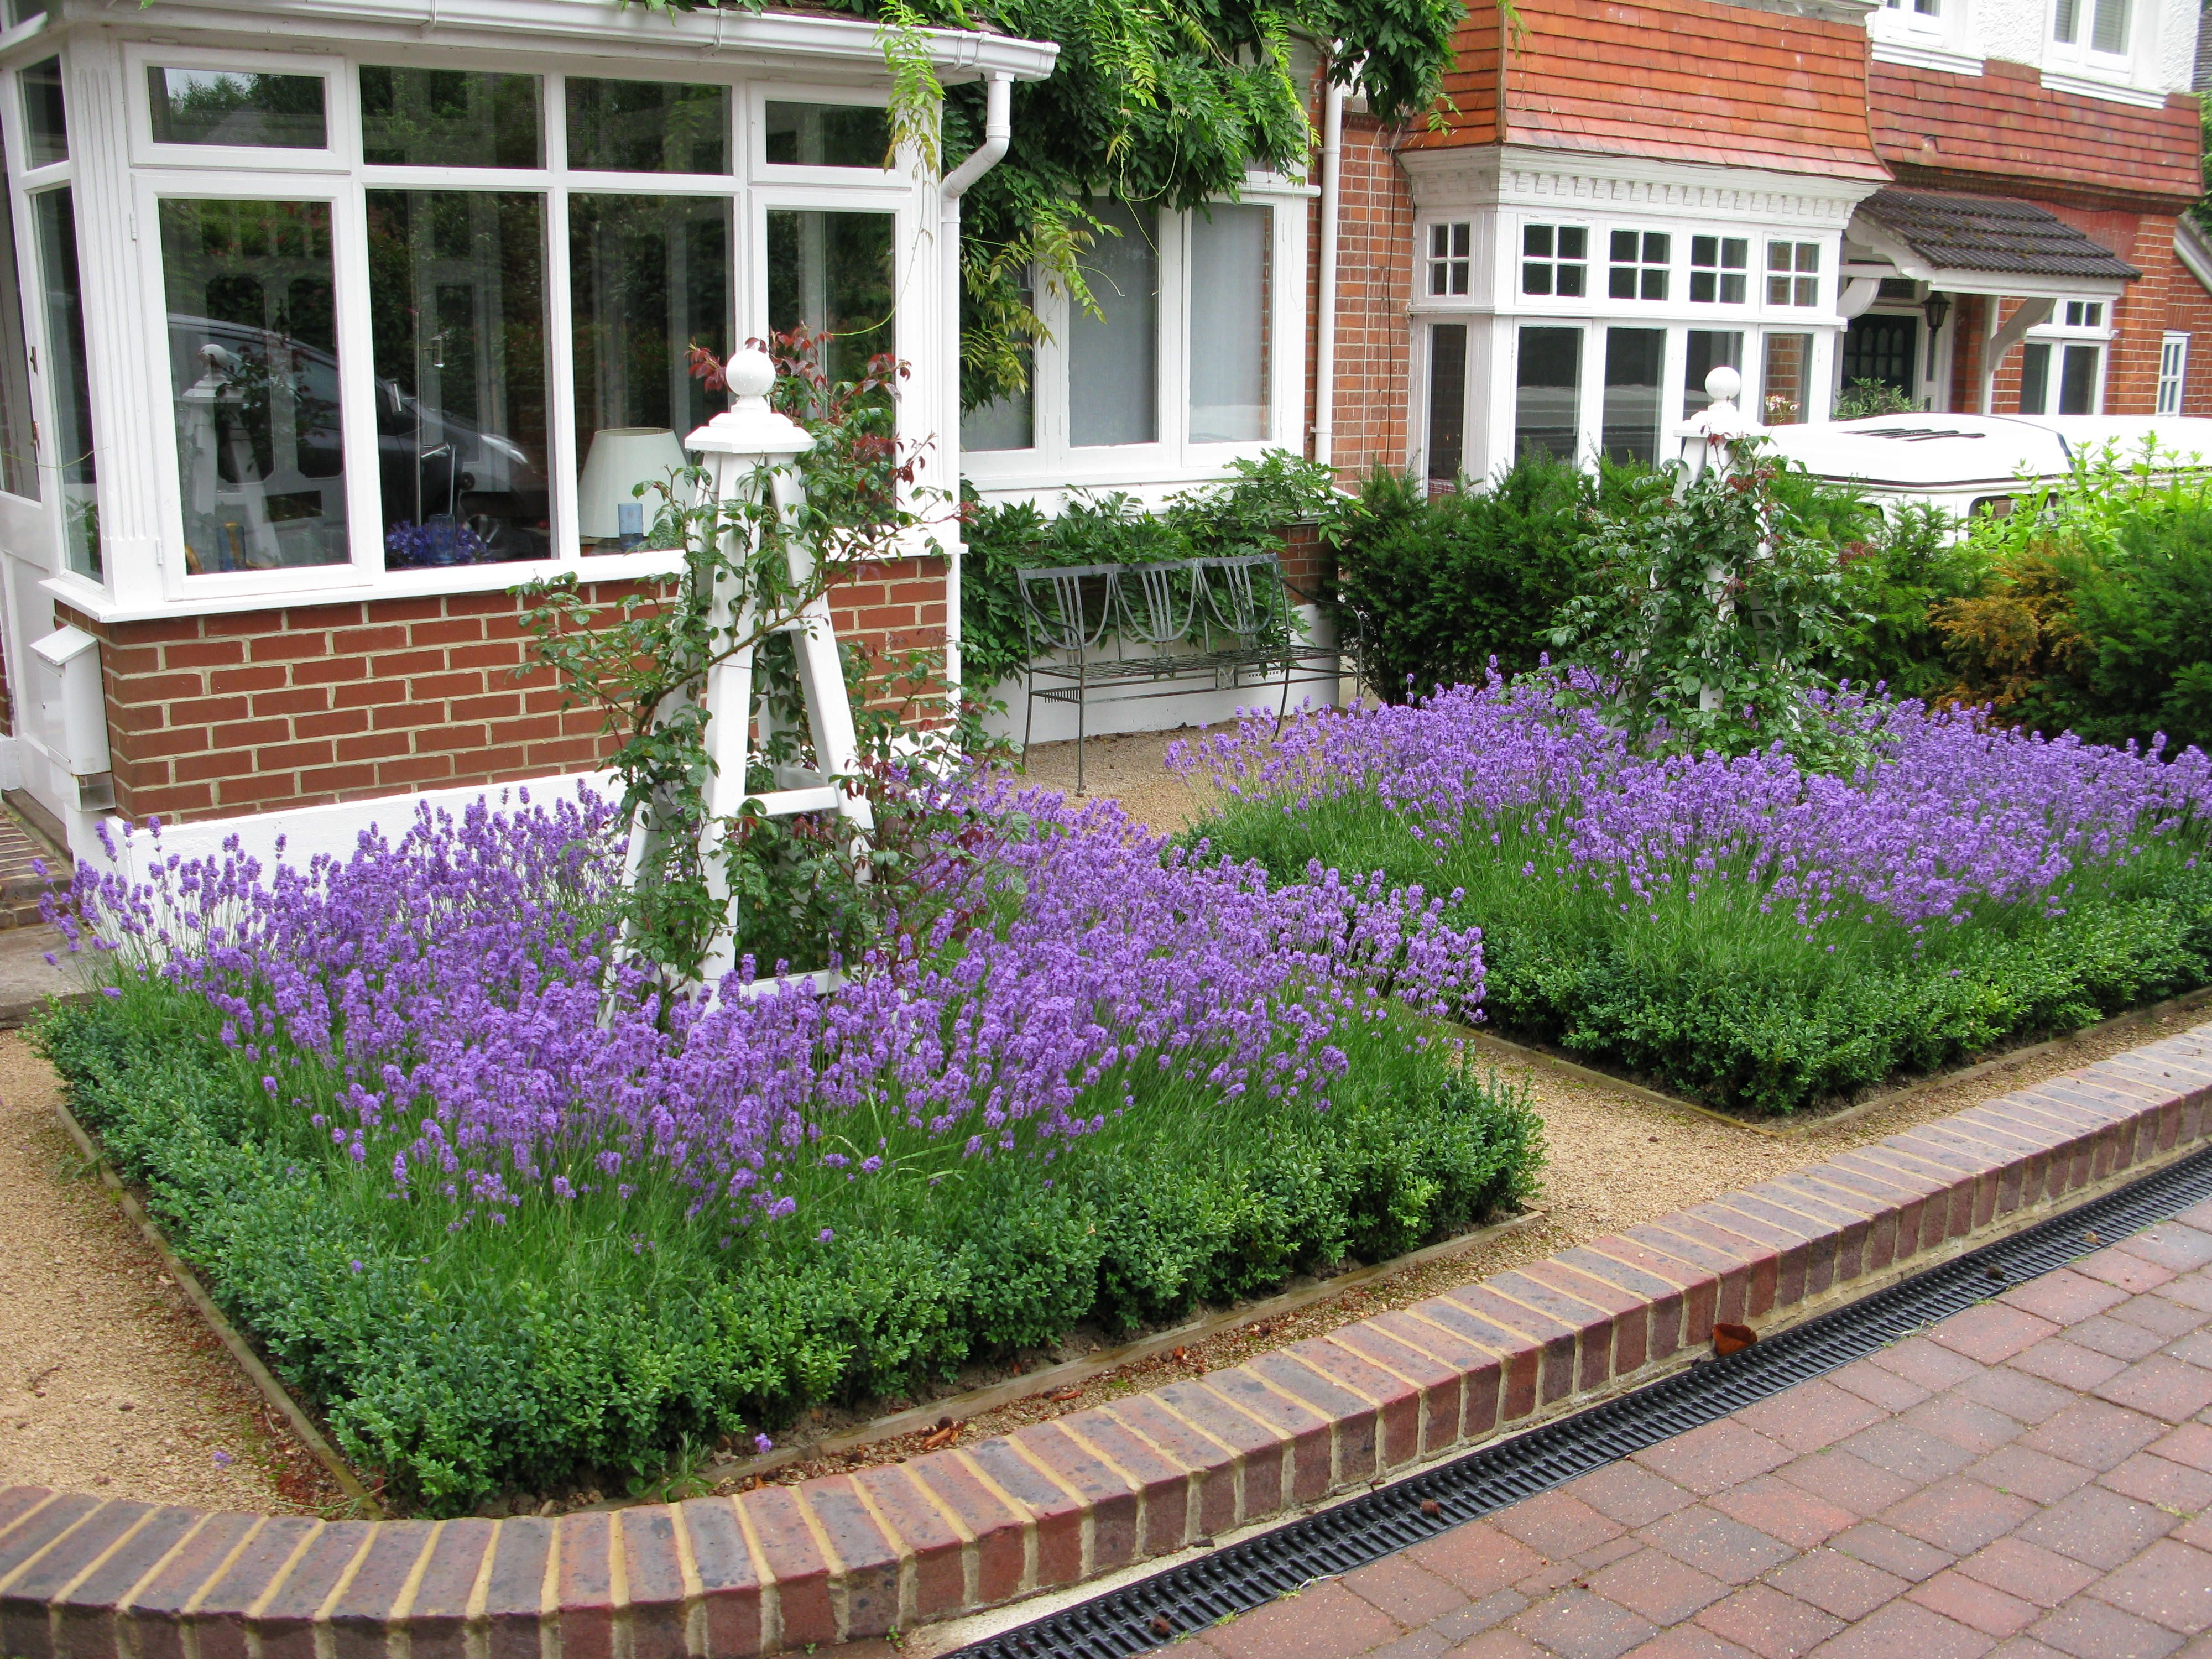 Oak Obelisks With Roses Climbing Up Them Under Planted Lavender And A Buxus Hedge Surrounding It All